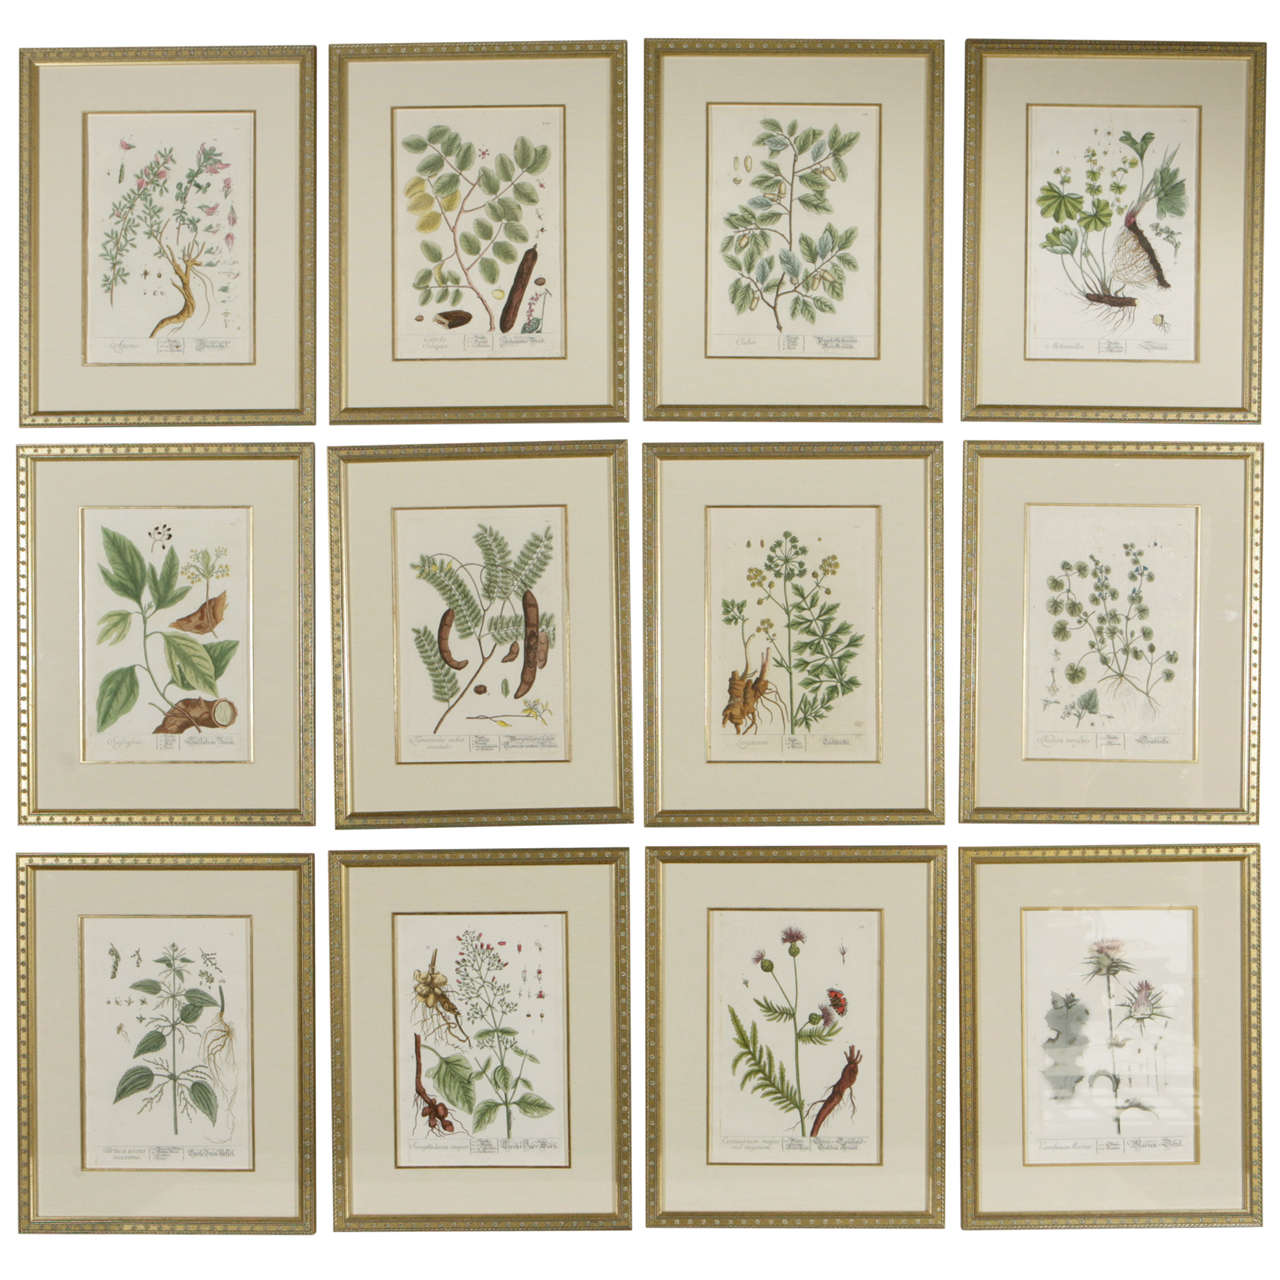 18th century framed botanical prints for sale at 1stdibs